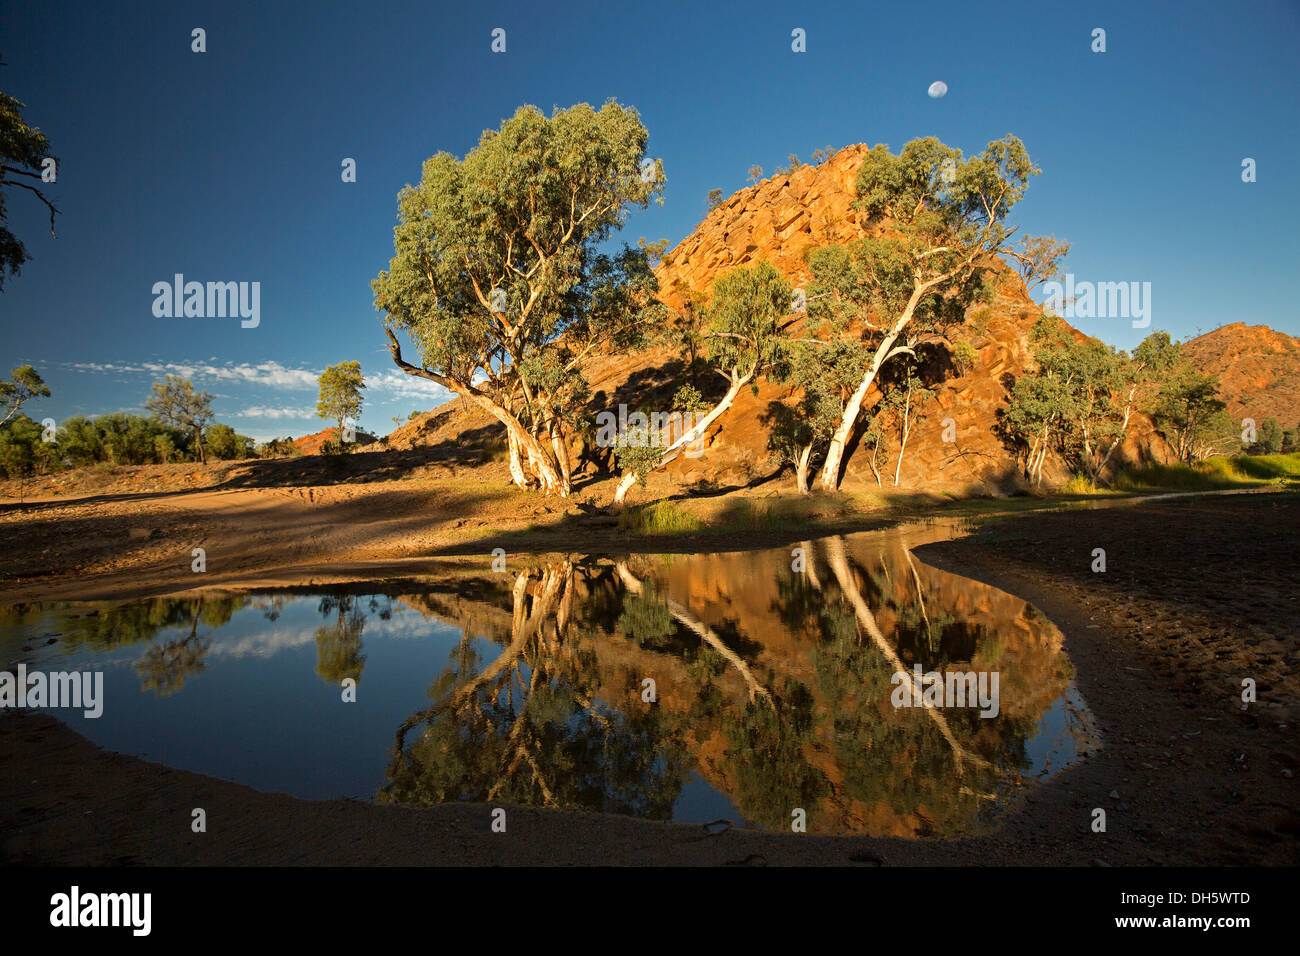 Australian outback landscape with ghost gums and rocks reflected in calm water of Ross River at dawn with full moon in blue sky - Stock Image